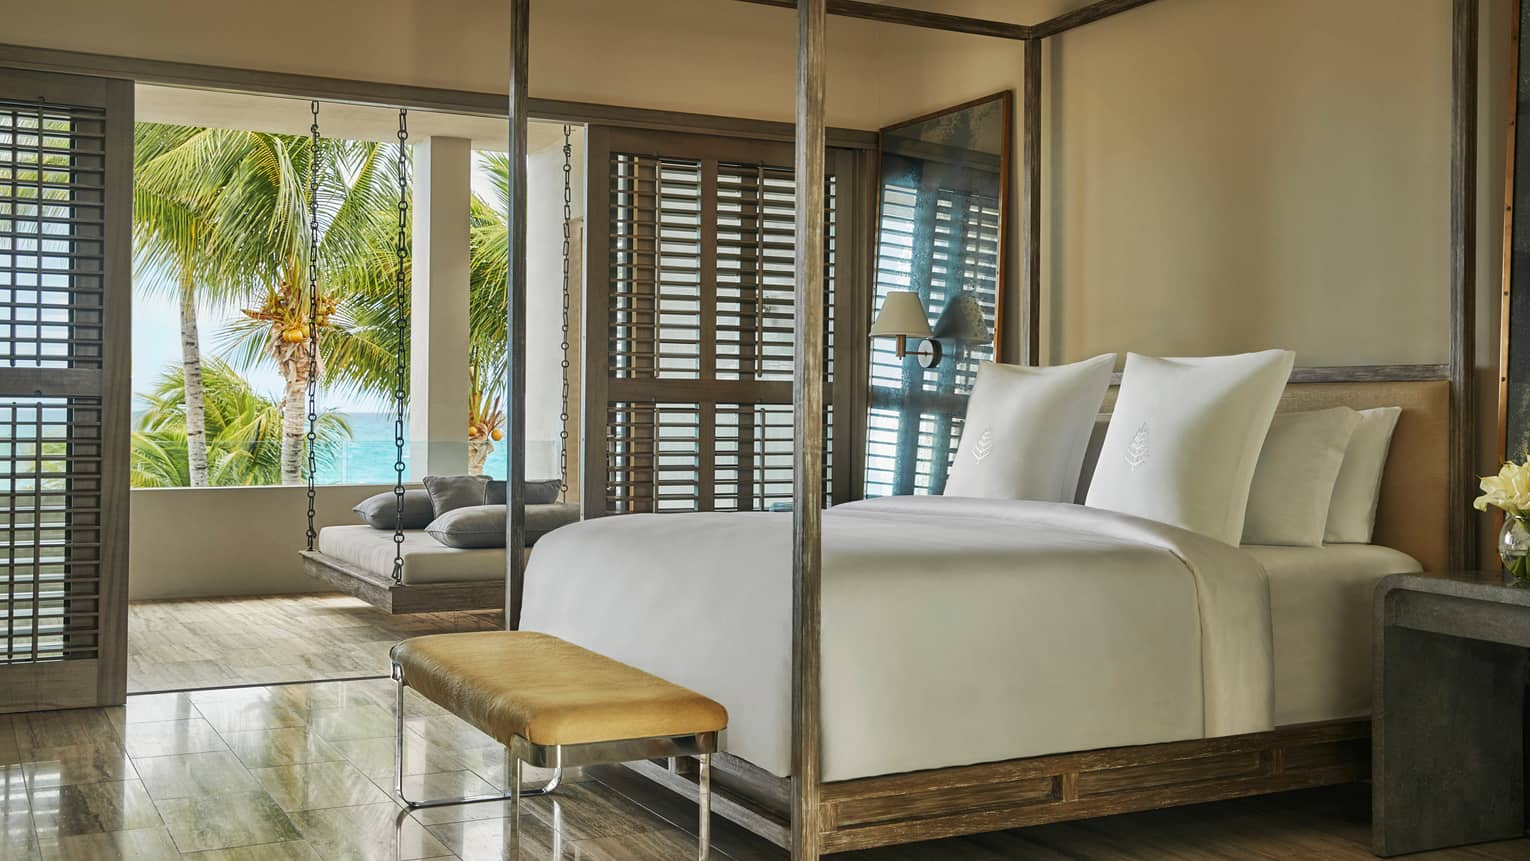 Bed with white linens, rustic wood canopy, small leather bench, open patio door shutters  to hanging chair